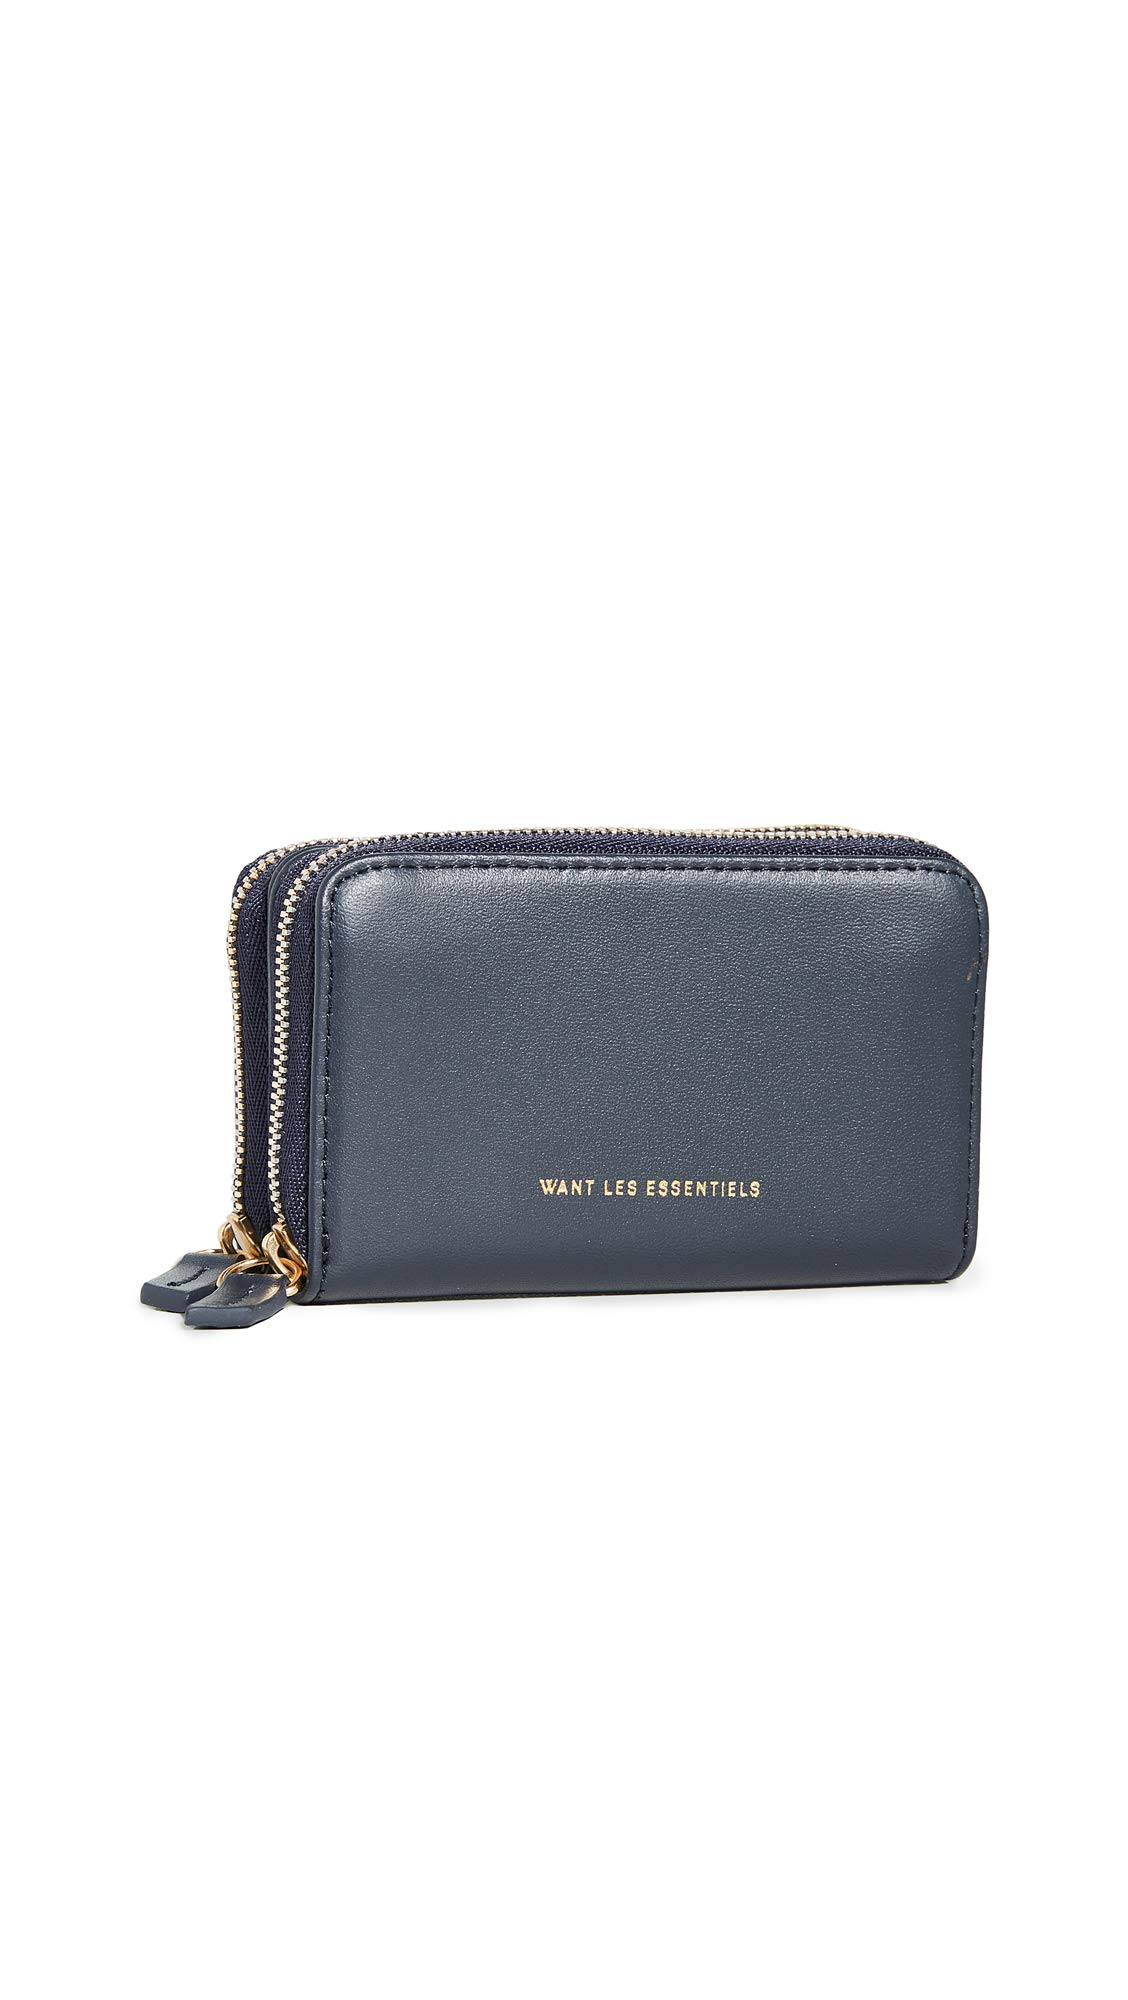 WANT Les Essentiels Women's Mini Petra Double Zip Card Holder, Navy/Jet Black, One Size by WANT Les Essentiels